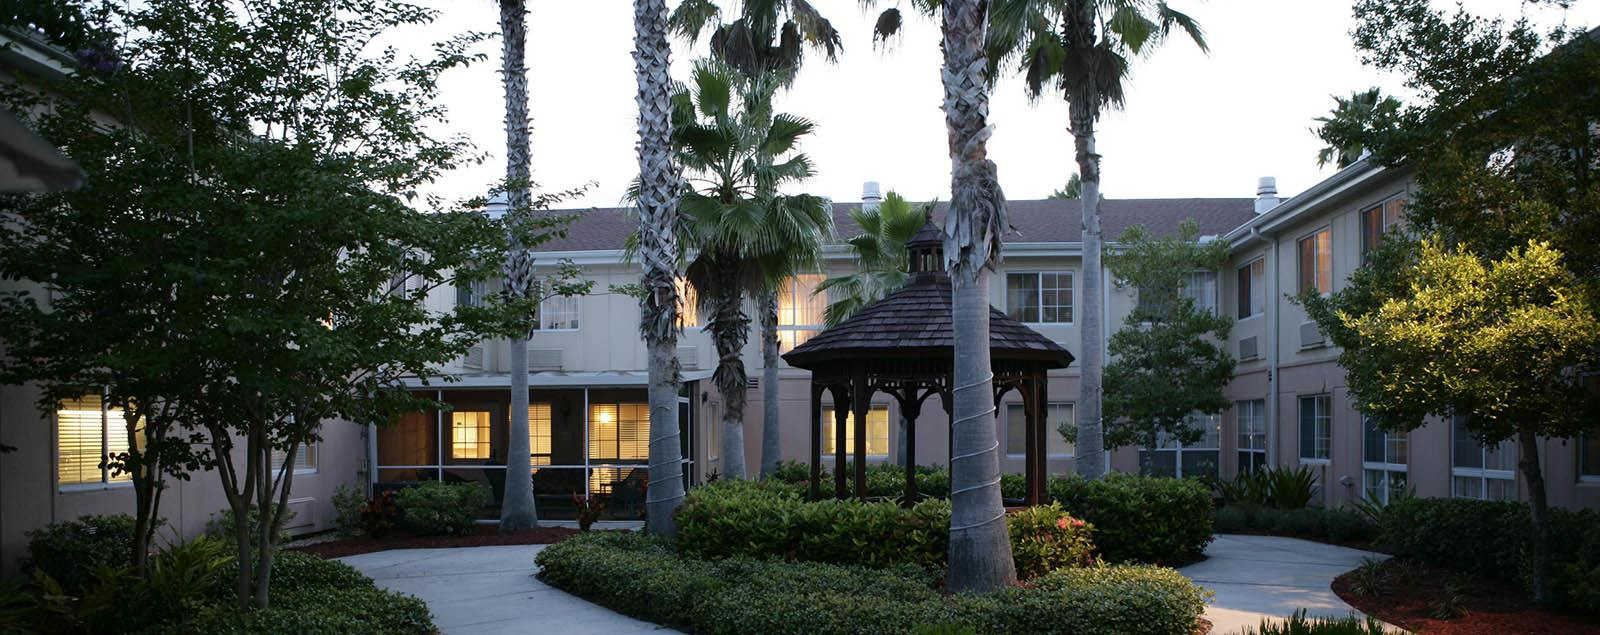 Photo gallery of Senior Living in Venice